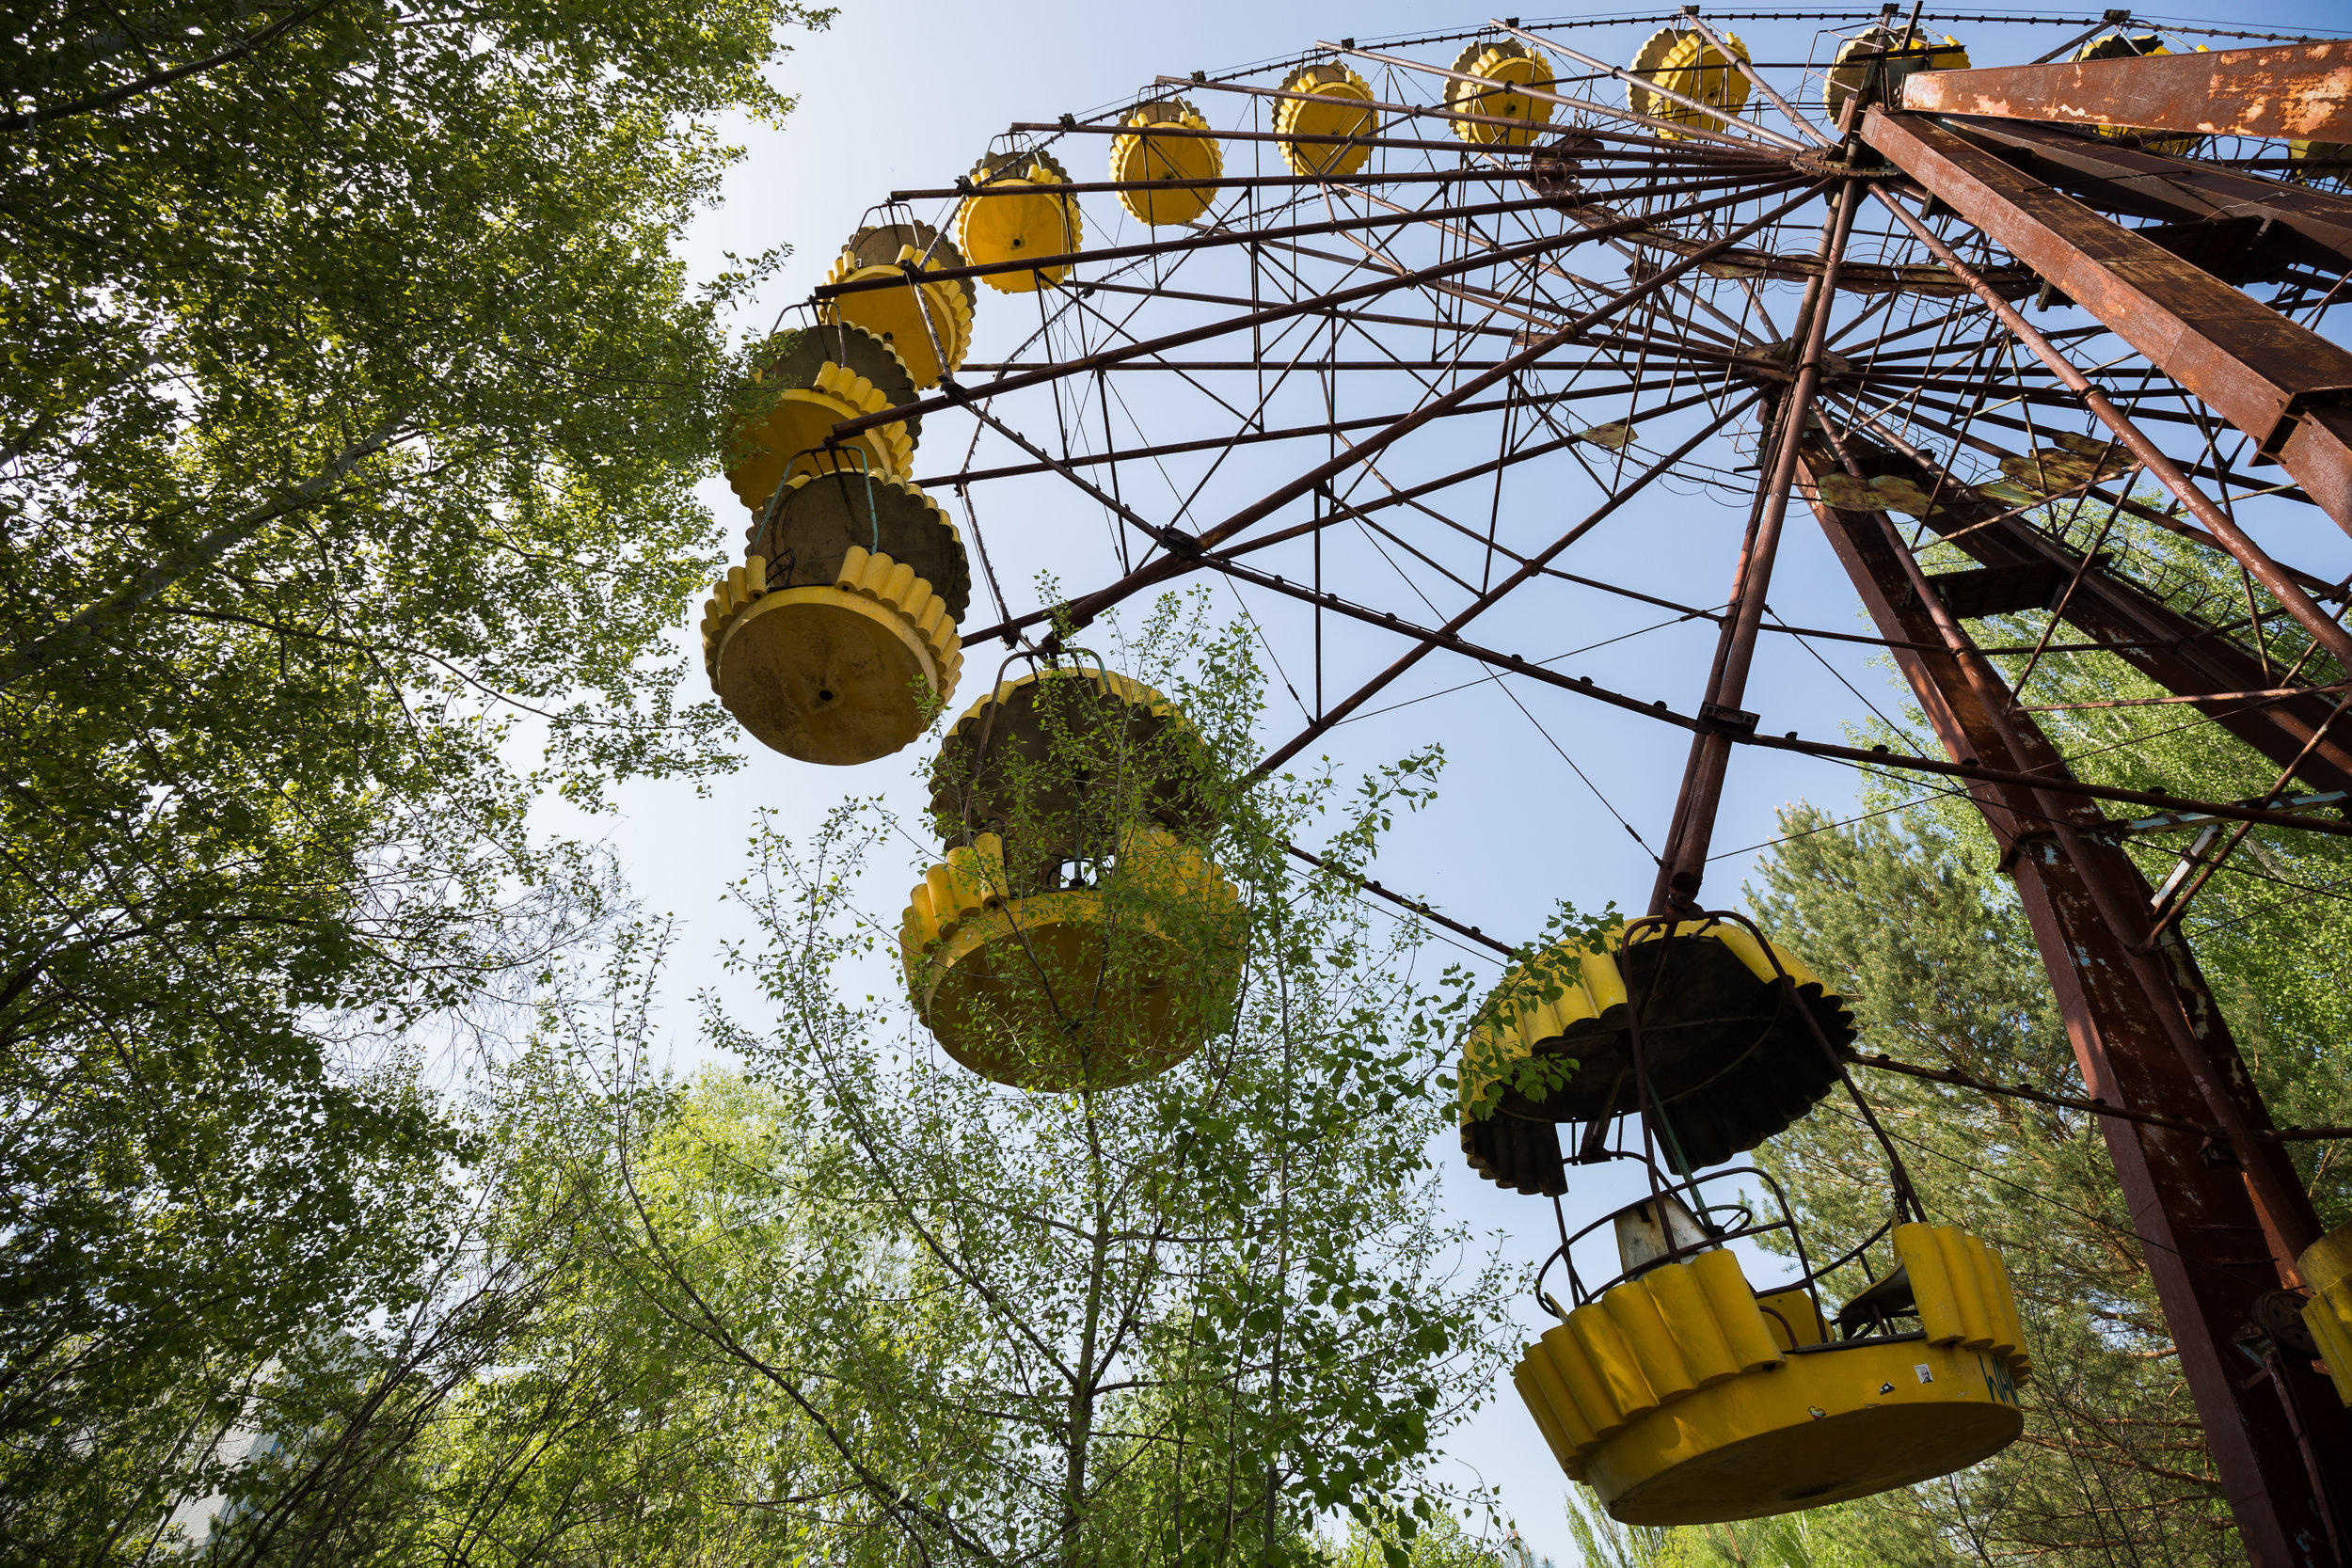 The iconic ferris wheel of Pripyat amusement park which was scheduled to open on 1 May 1986 for the May Day celebrations.